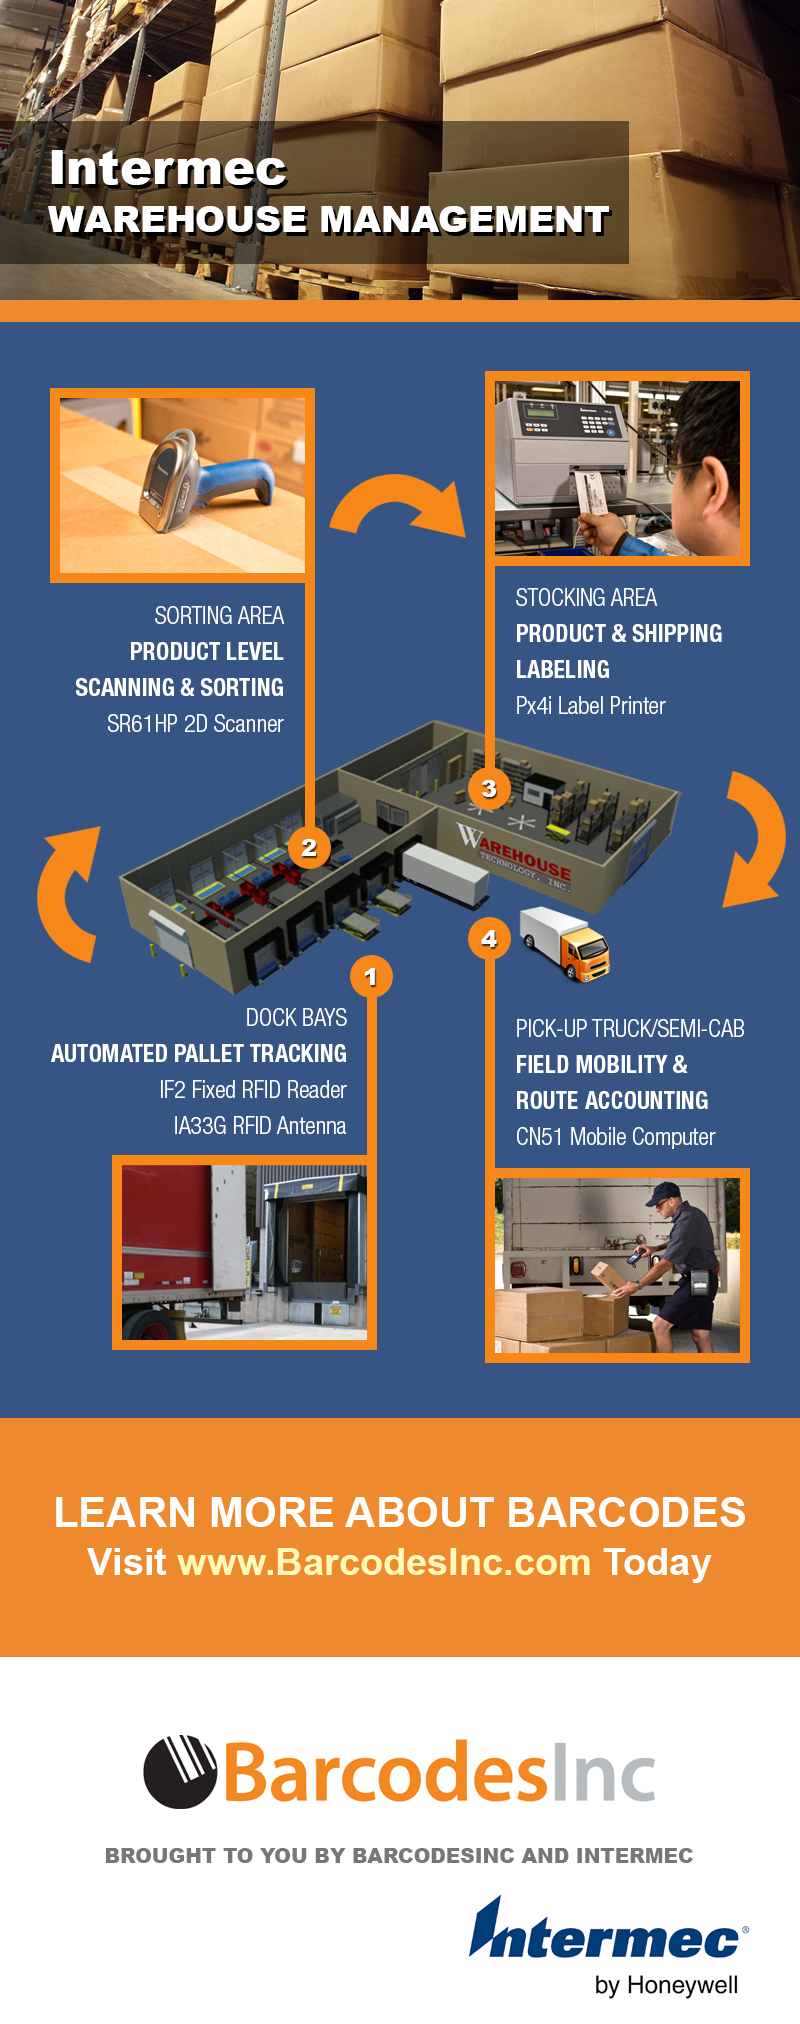 Intermec - Warehouse Management